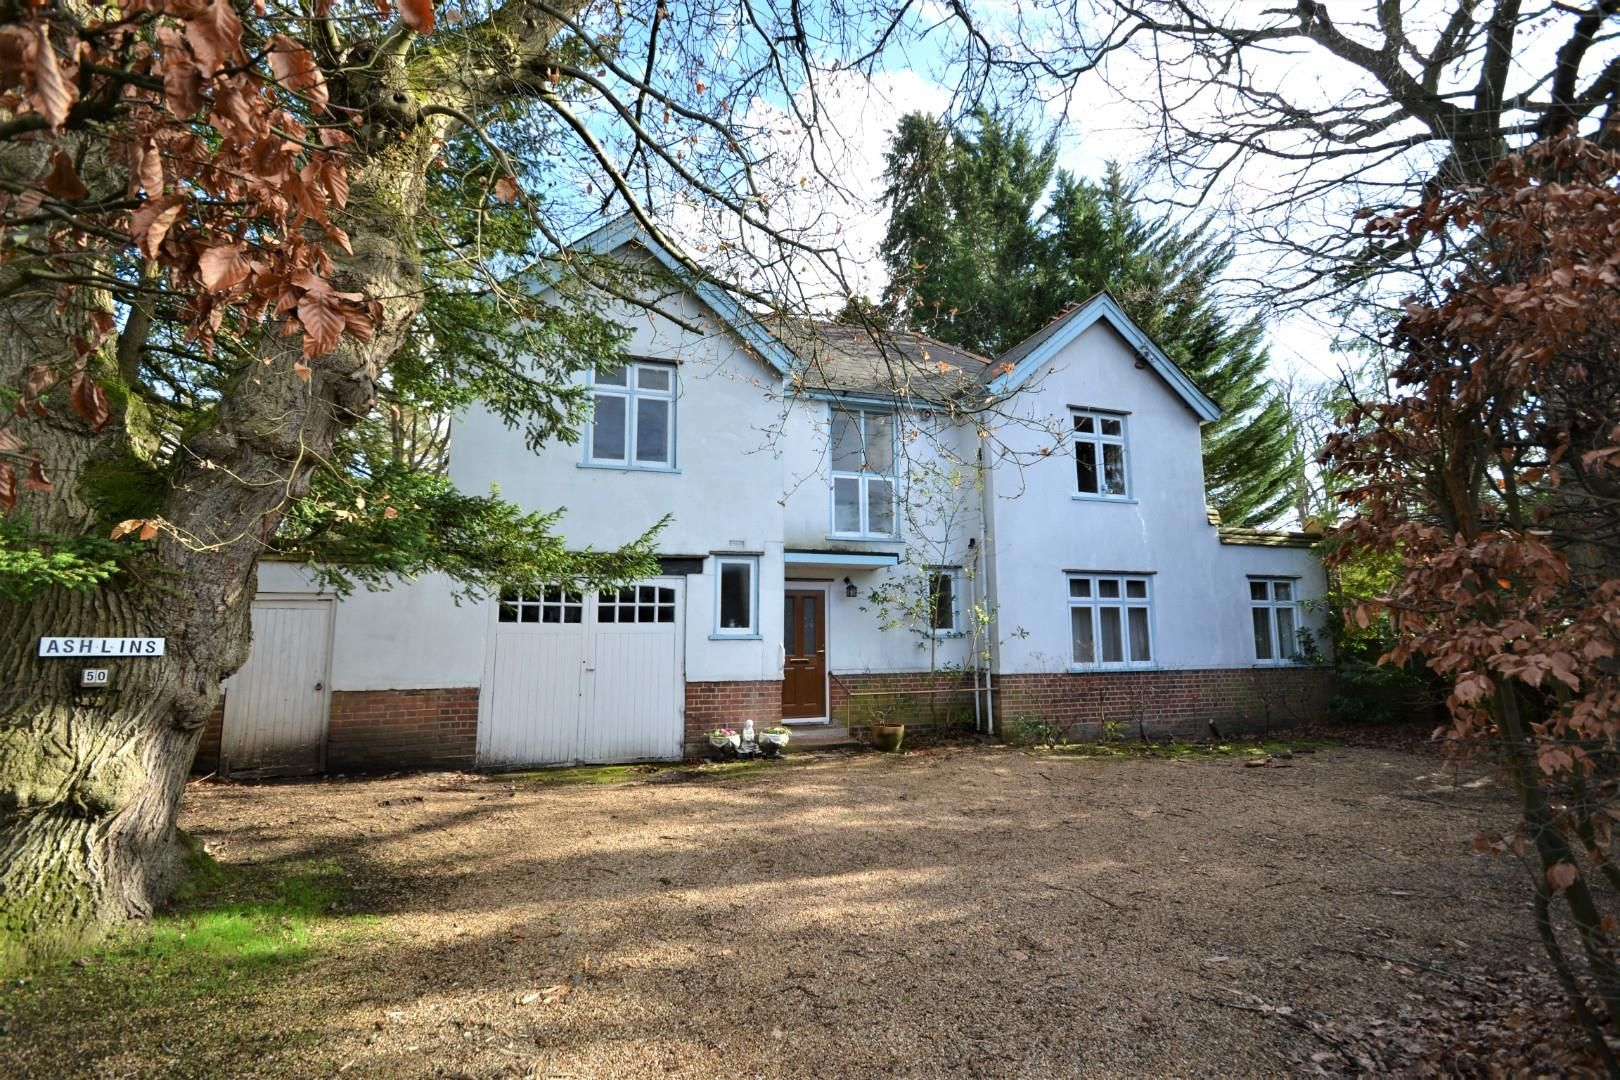 4 bed house for sale 2